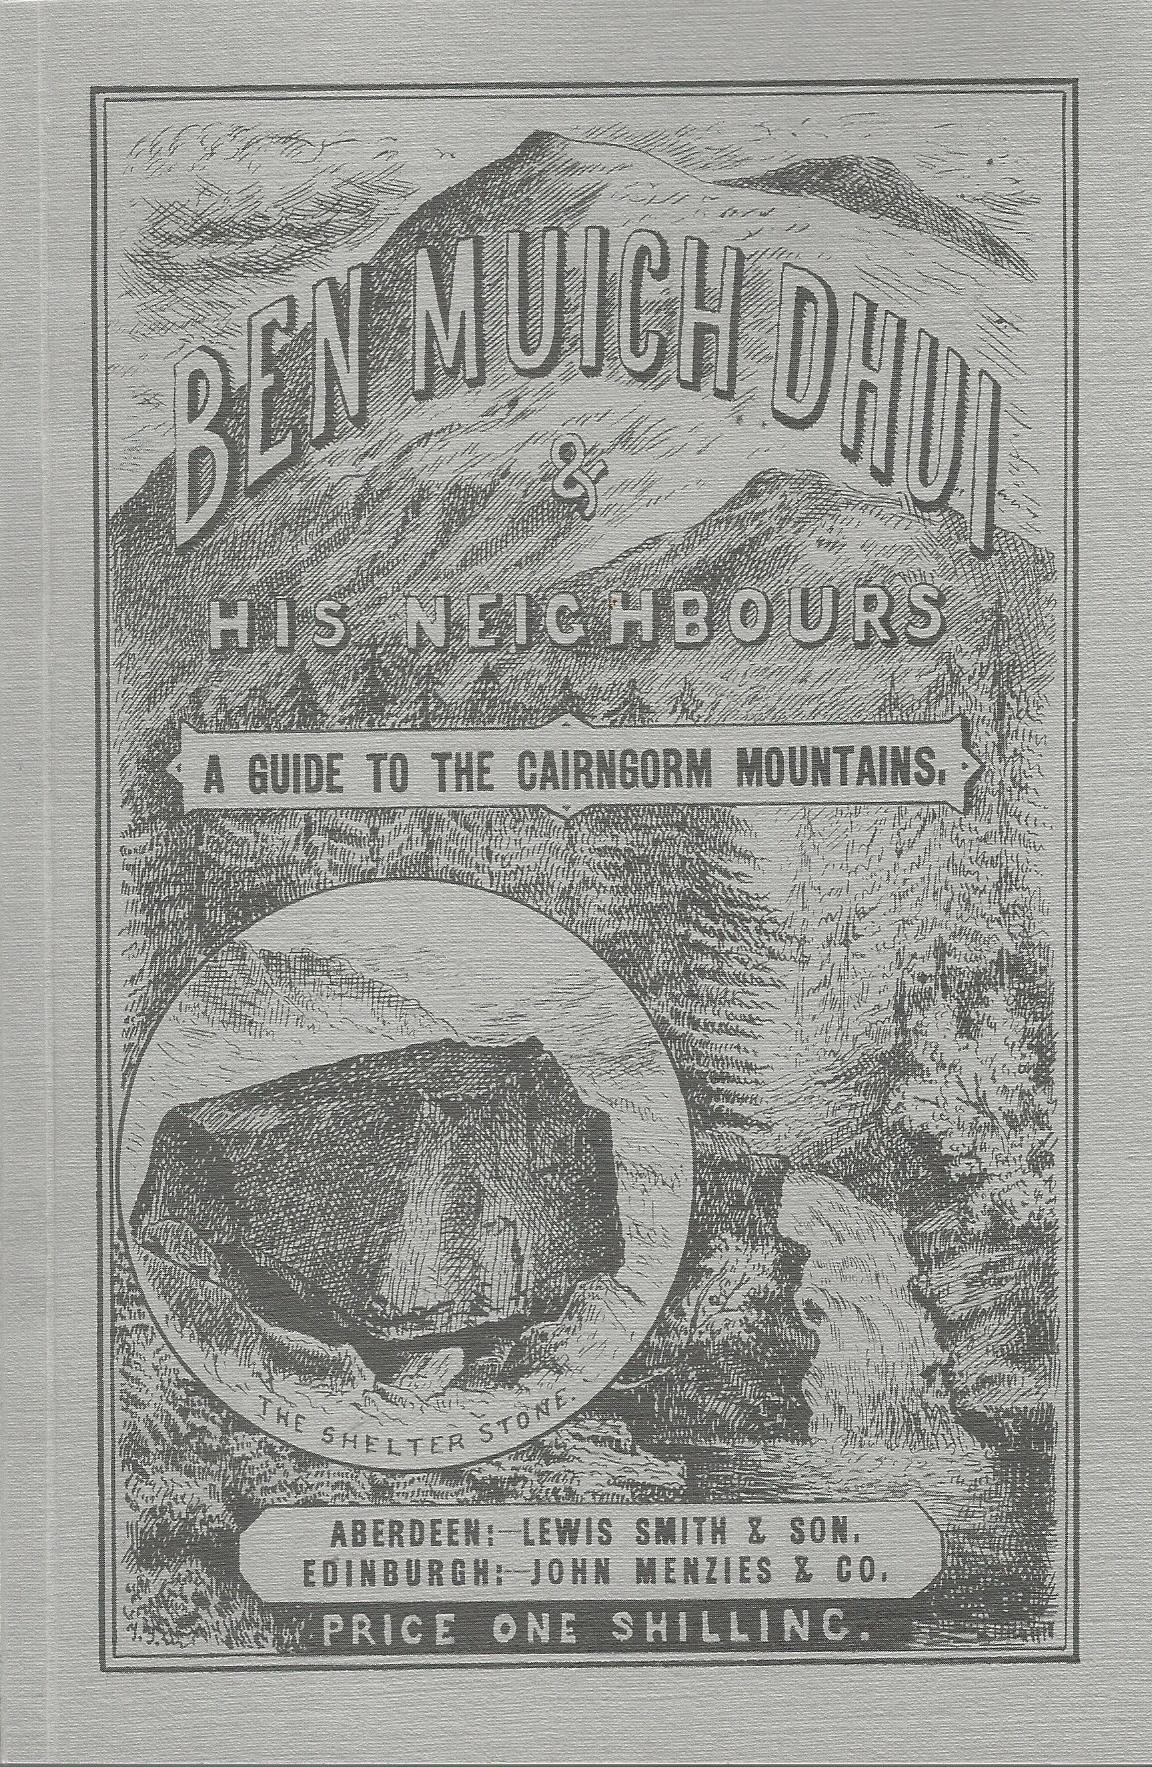 Image for Ben Muich Dhui (Ben MacDhui, Mac Dhui) & His Neighbours: A Guide to the Cairngorm Mountains.